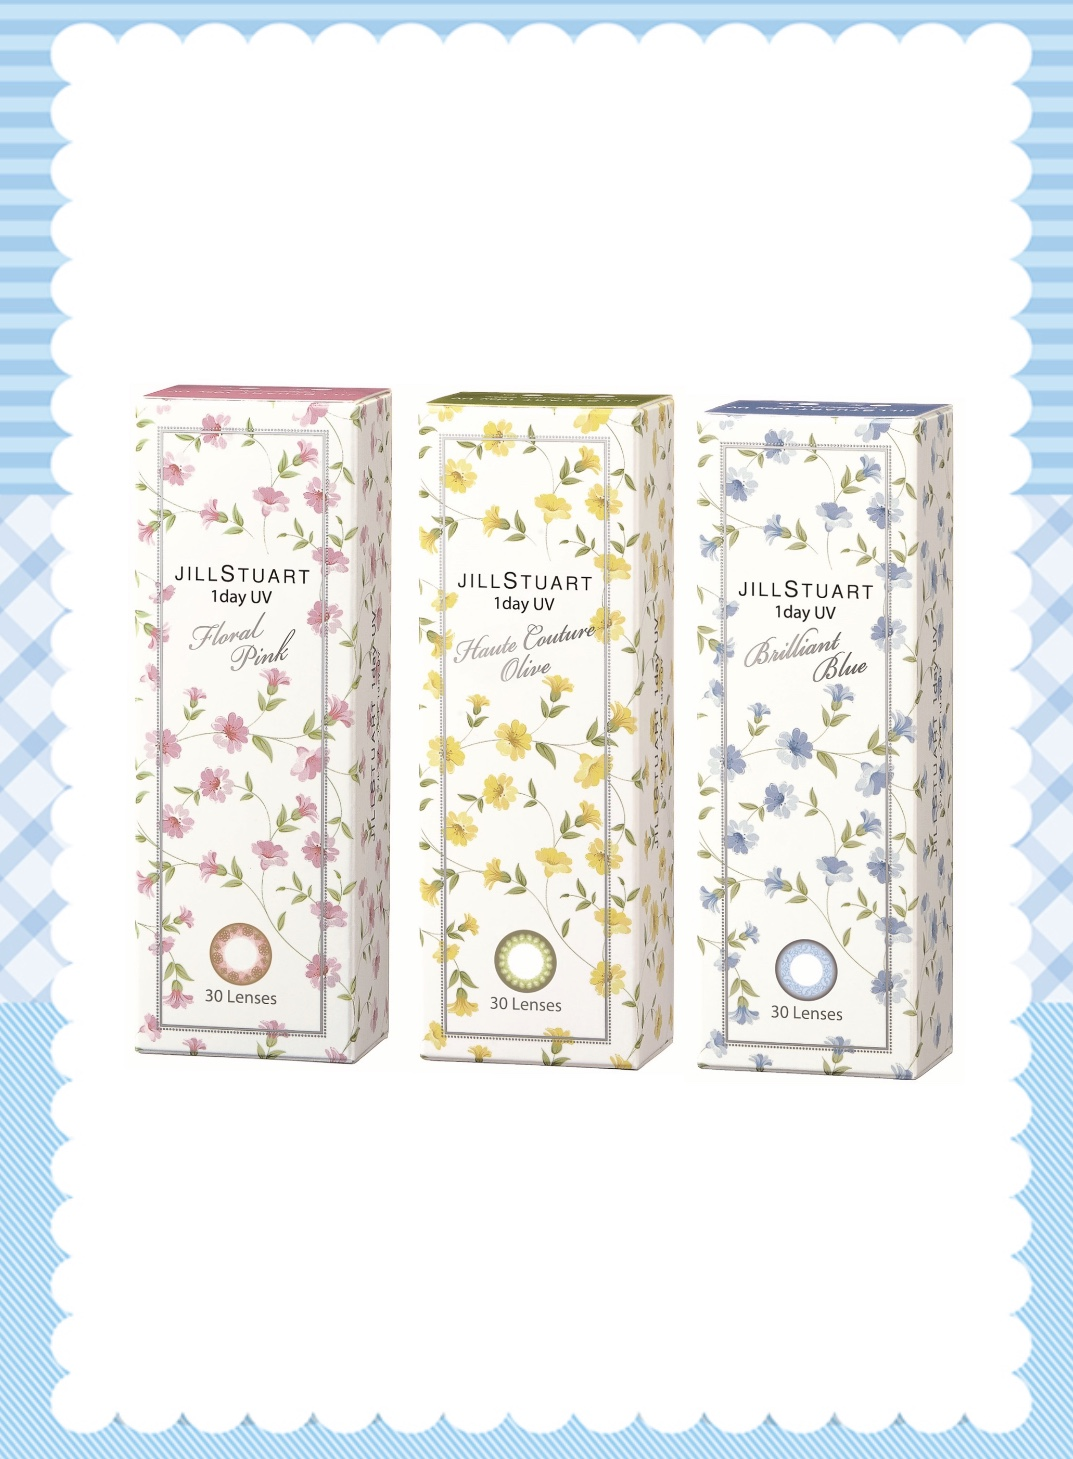 JILL STUART 1day UV 10枚パック